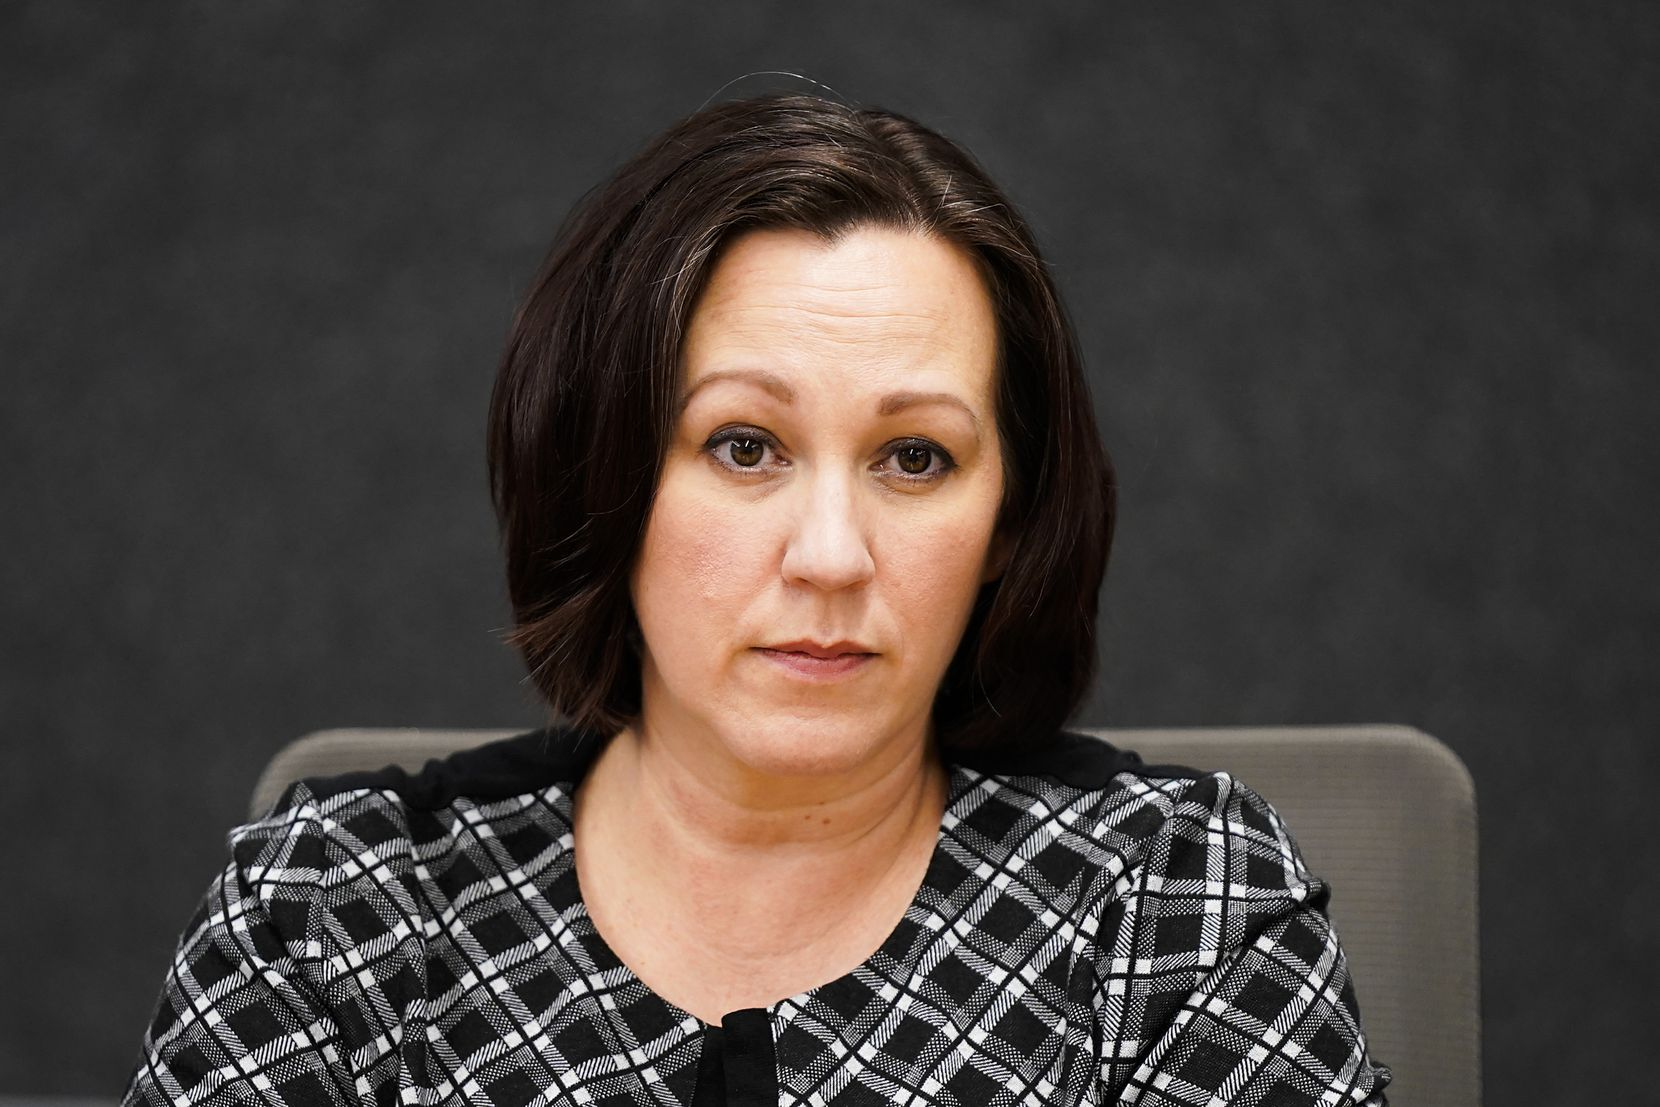 Democratic senate candidate MJ Hegar during a meeting with the The Dallas Morning News editorial board on Wednesday, Feb. 5, 2020, in Dallas. (Smiley N. Pool/The Dallas Morning News)